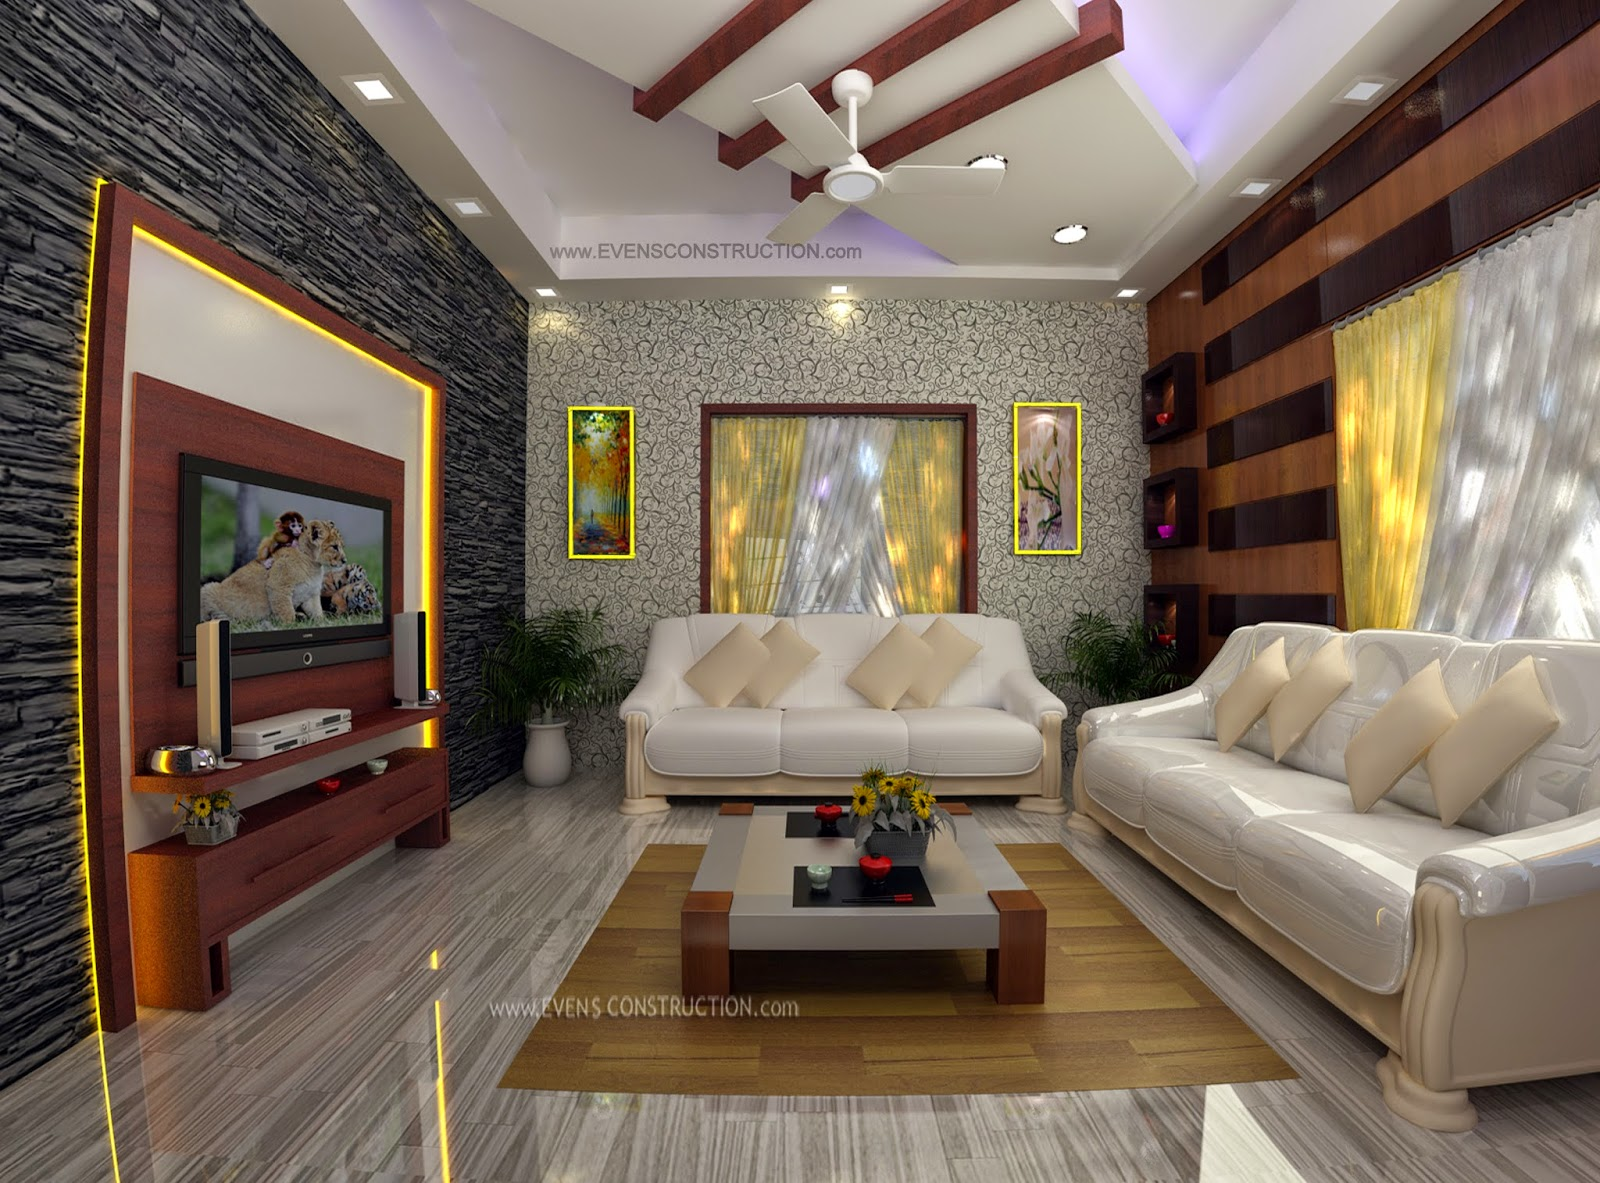 Pics Of Houses Inside Kerala Home Interior Design Living Room Home Design And